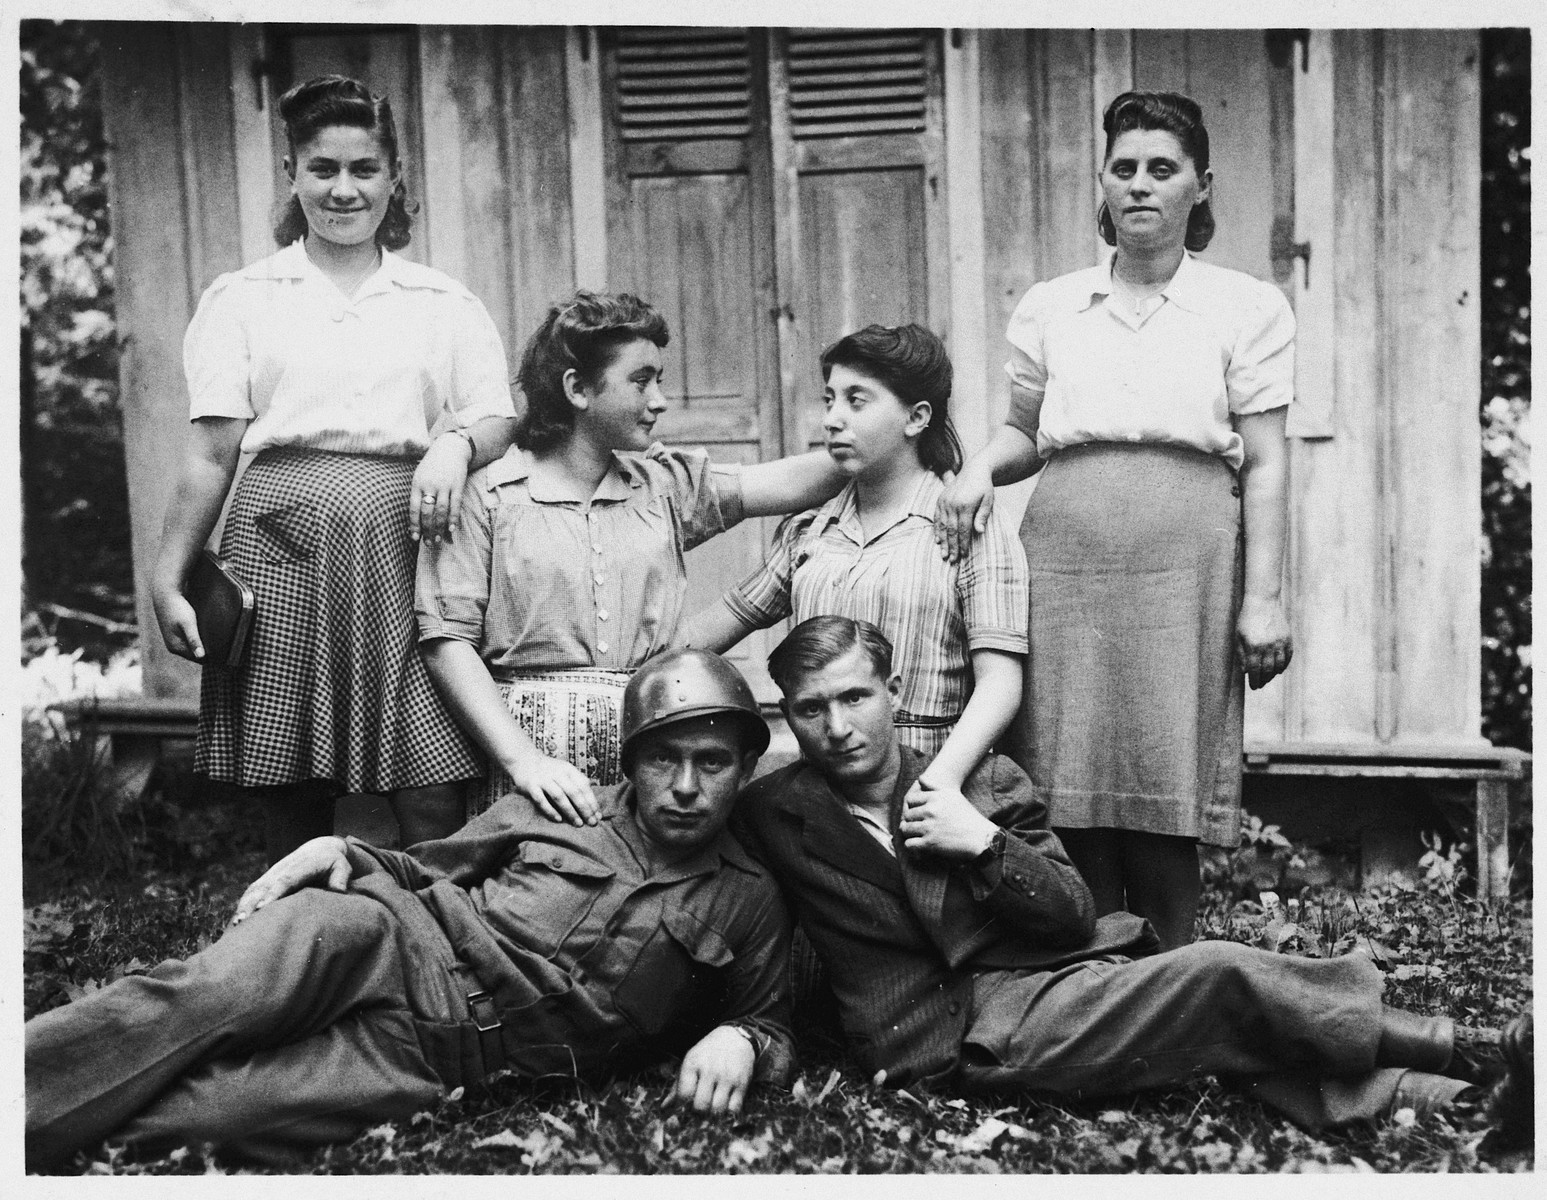 Six Jewish DPs pose outside a wooden barracks in the Feldafing displaced persons camp.  Among those pictured is Minia Wasilkowska (second from the right).